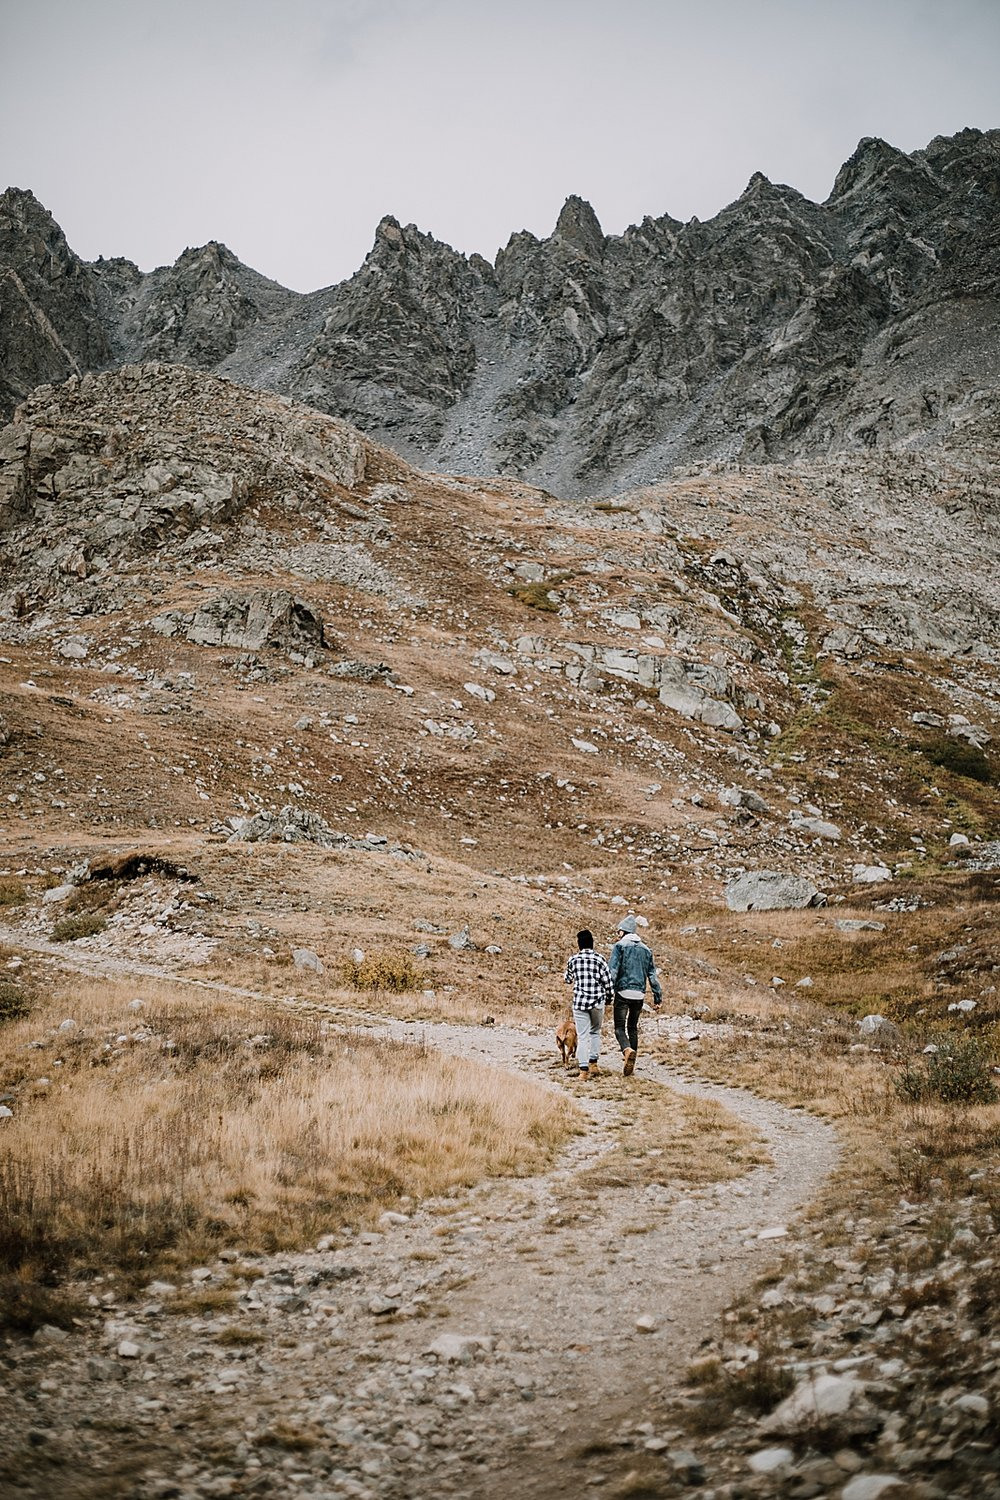 hiking up the mountain, colorado surprise proposal, hike mayflower gulch, mayflower gulch proposal, mayflower gulch elopement, mayflower gulch wedding, colorado mountainscape, leadville elopement